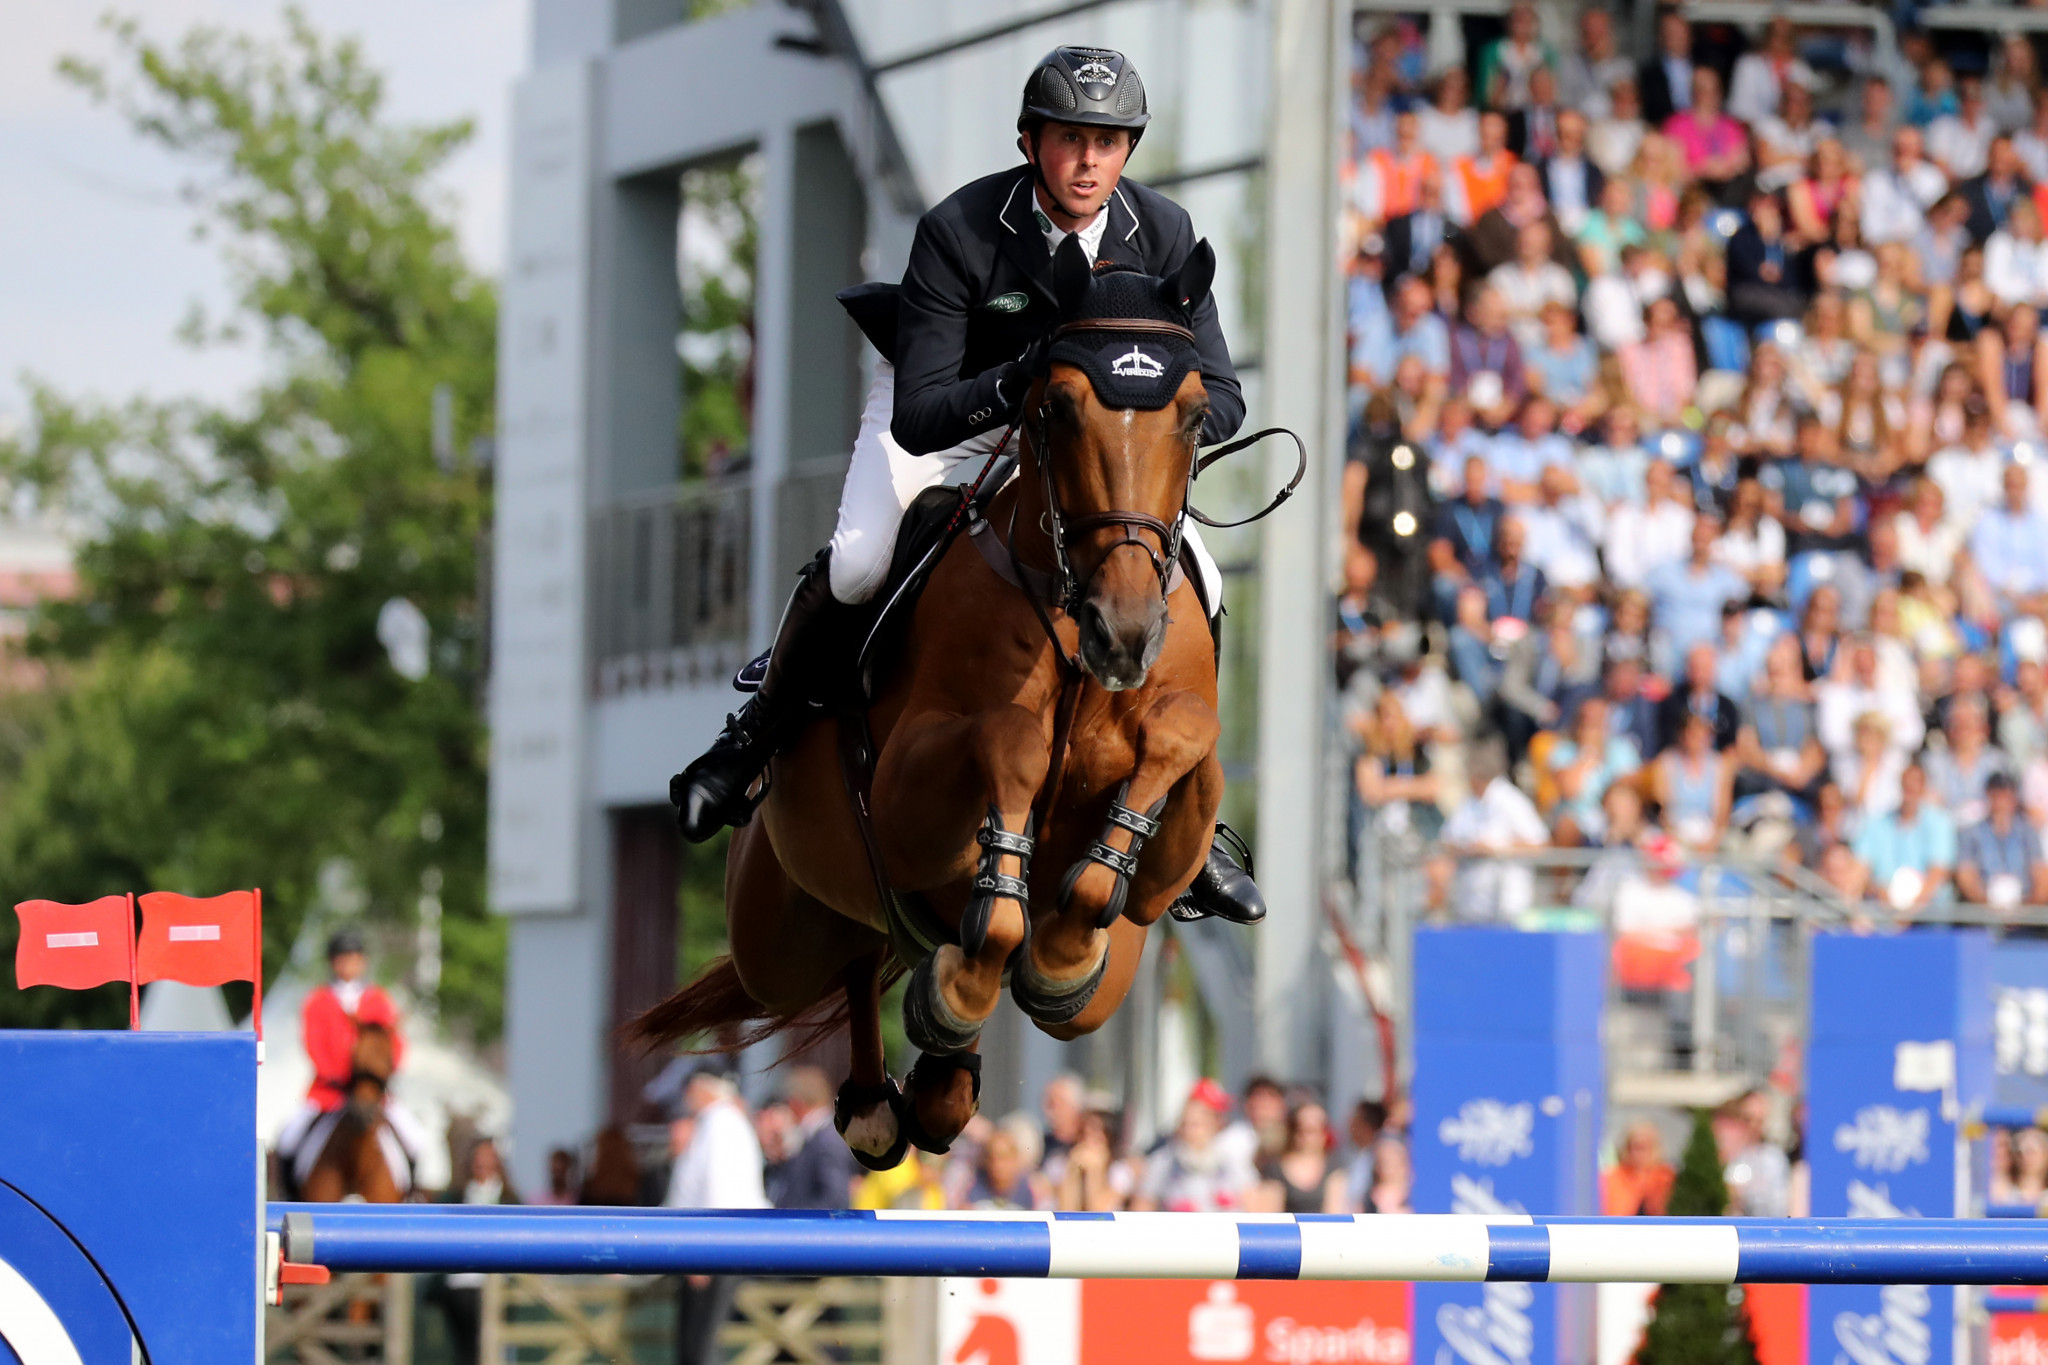 British riders promise strong challenge to Global Champions Tour leader Devos in London